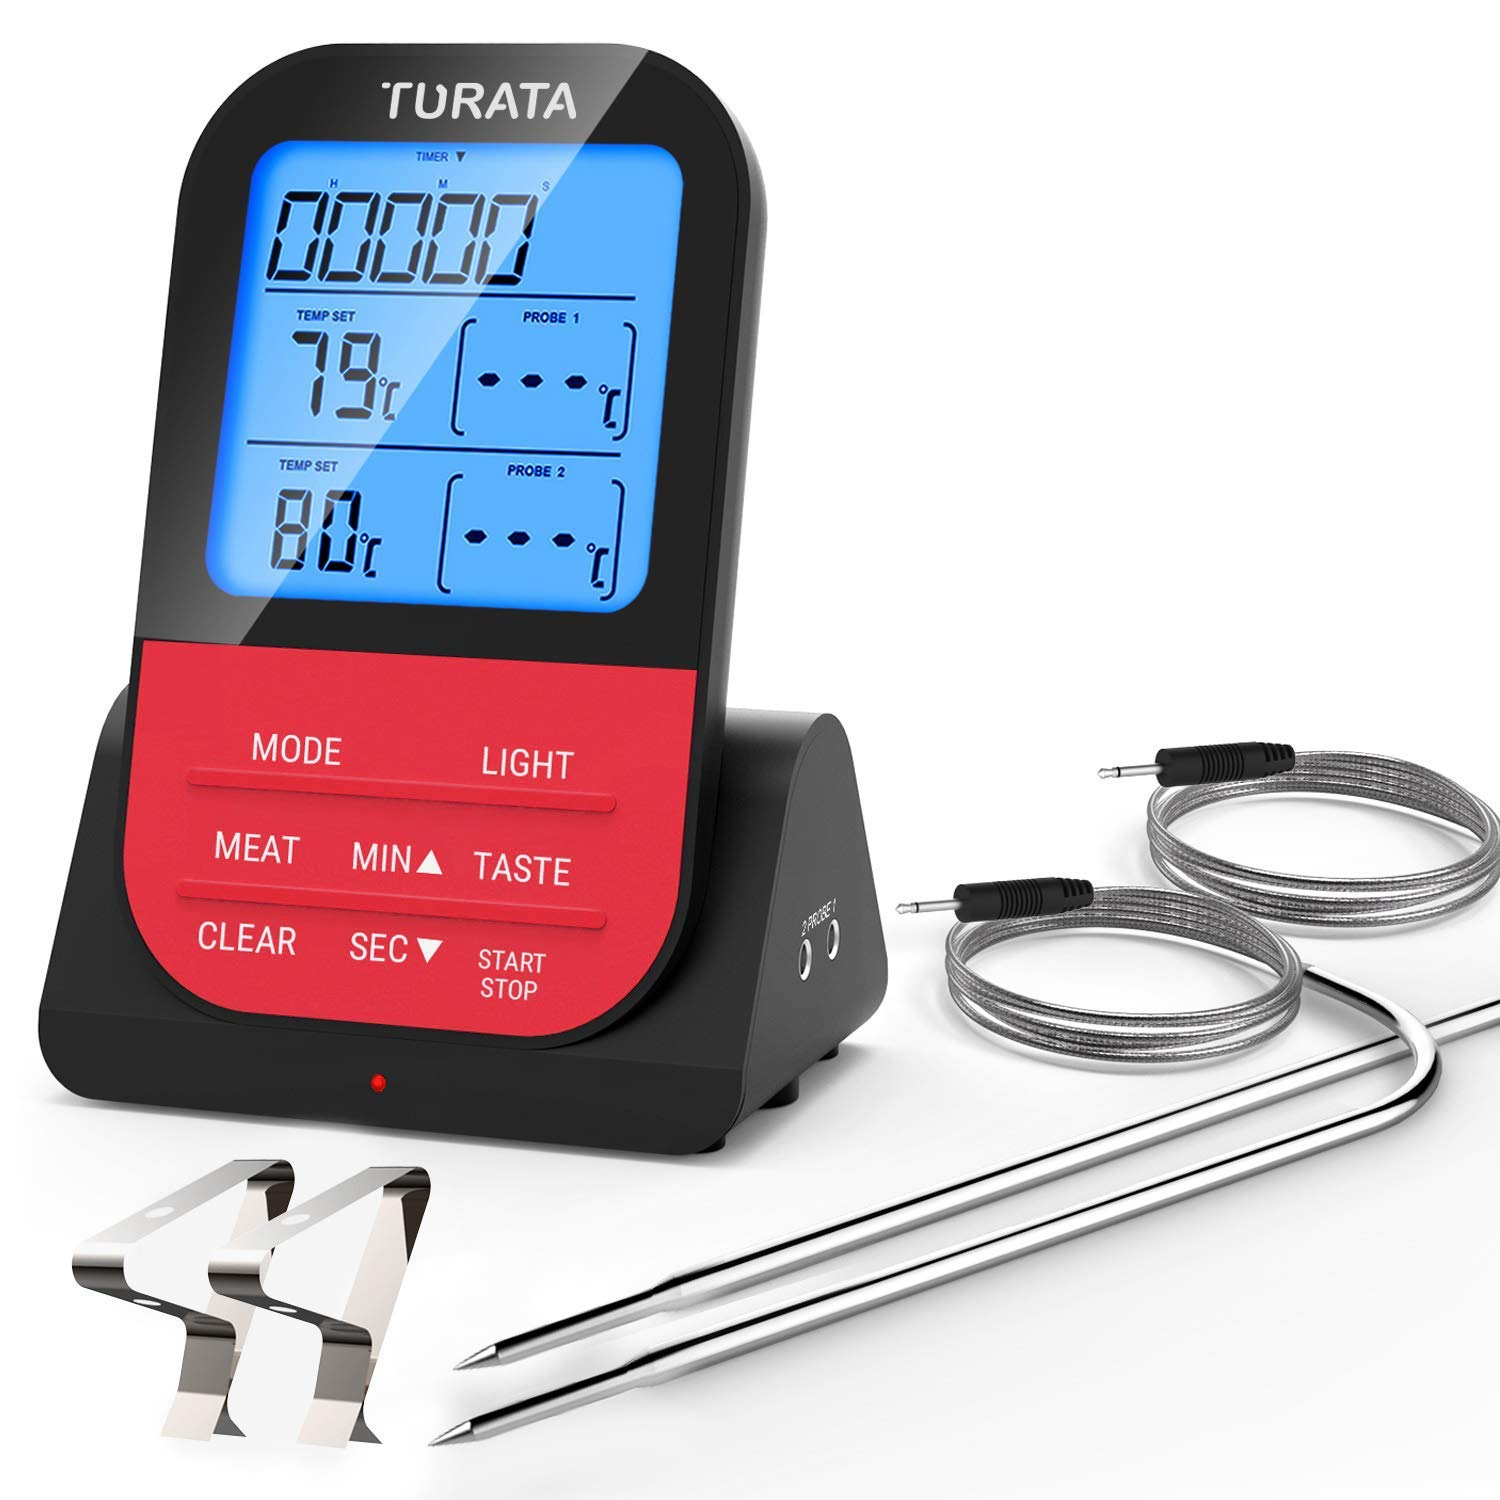 TURATA Meat Food Thermometer, Wireless Remote Instant Read Kitchen Cooking BBQ Thermometer with Dual Probe, 260 Feet Sensing Range, Timer and Alarm Monitor for Grill Smoker Oven